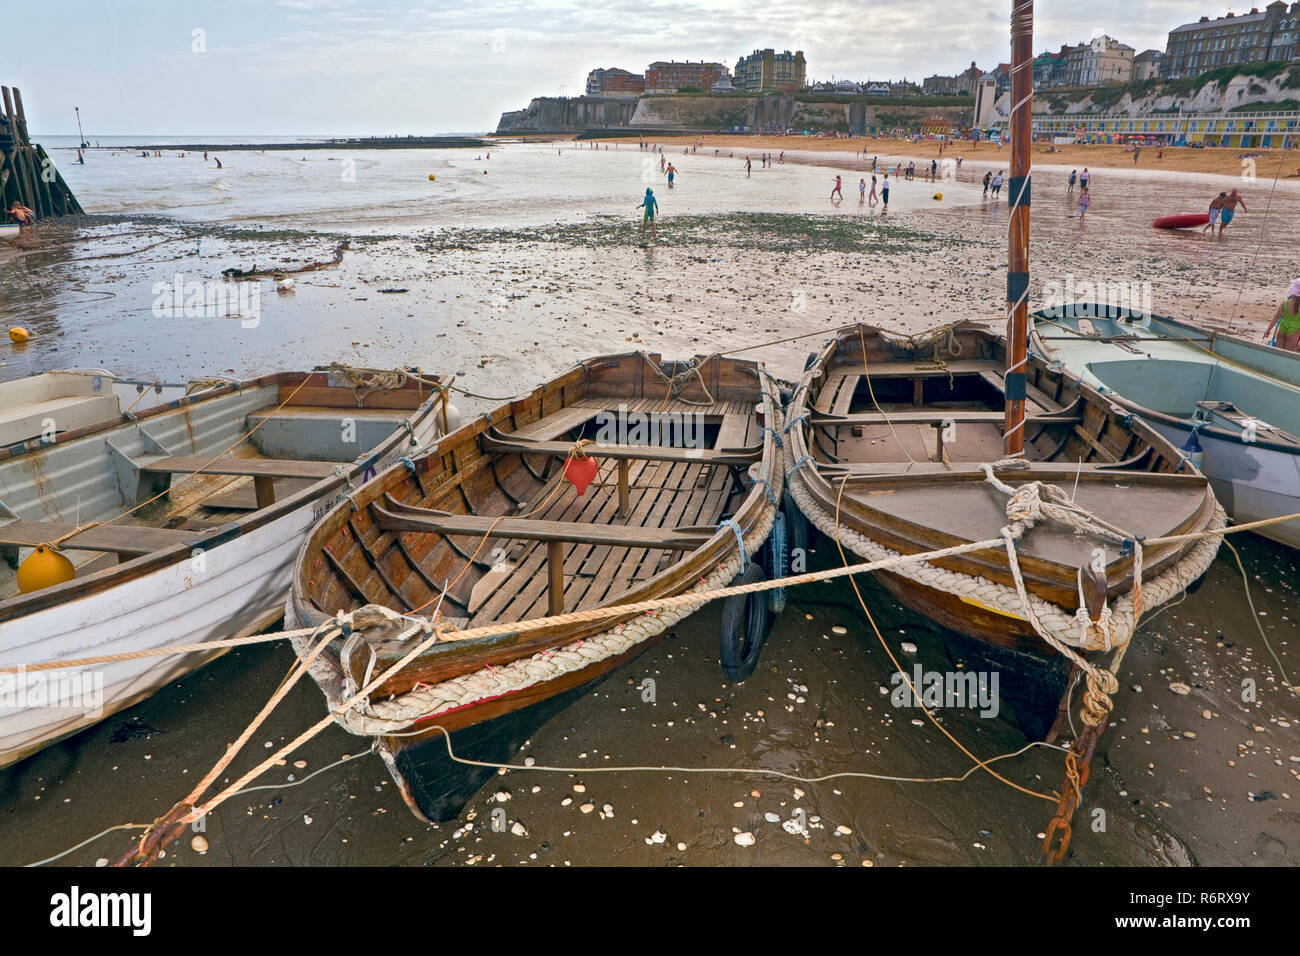 Viking Bay, Broadstairs, Ent, England. - Stock Image